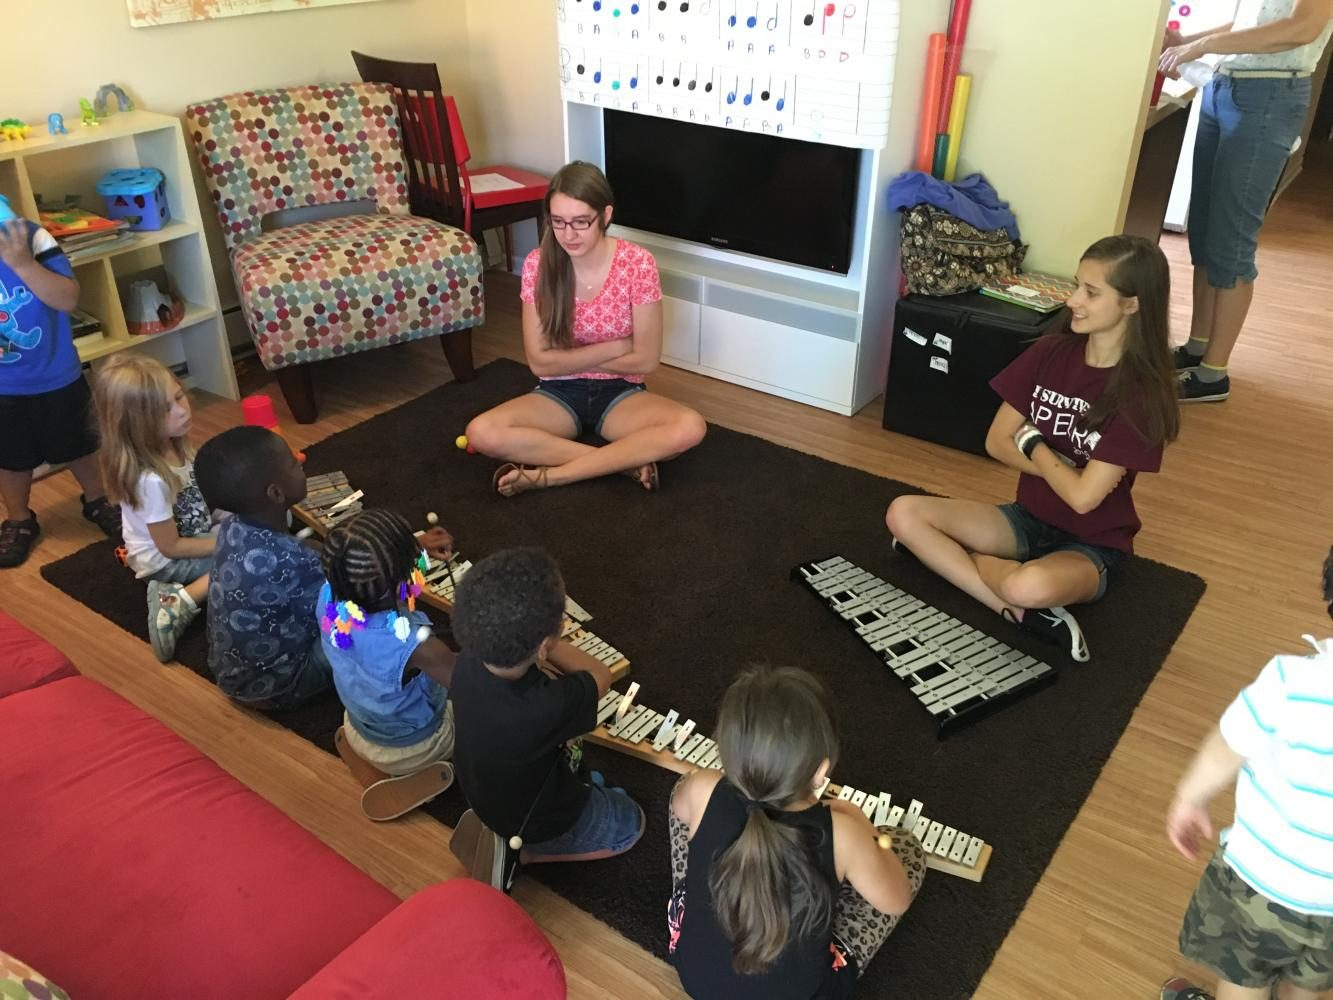 Amanda Brennan teaches kids in need the power of music